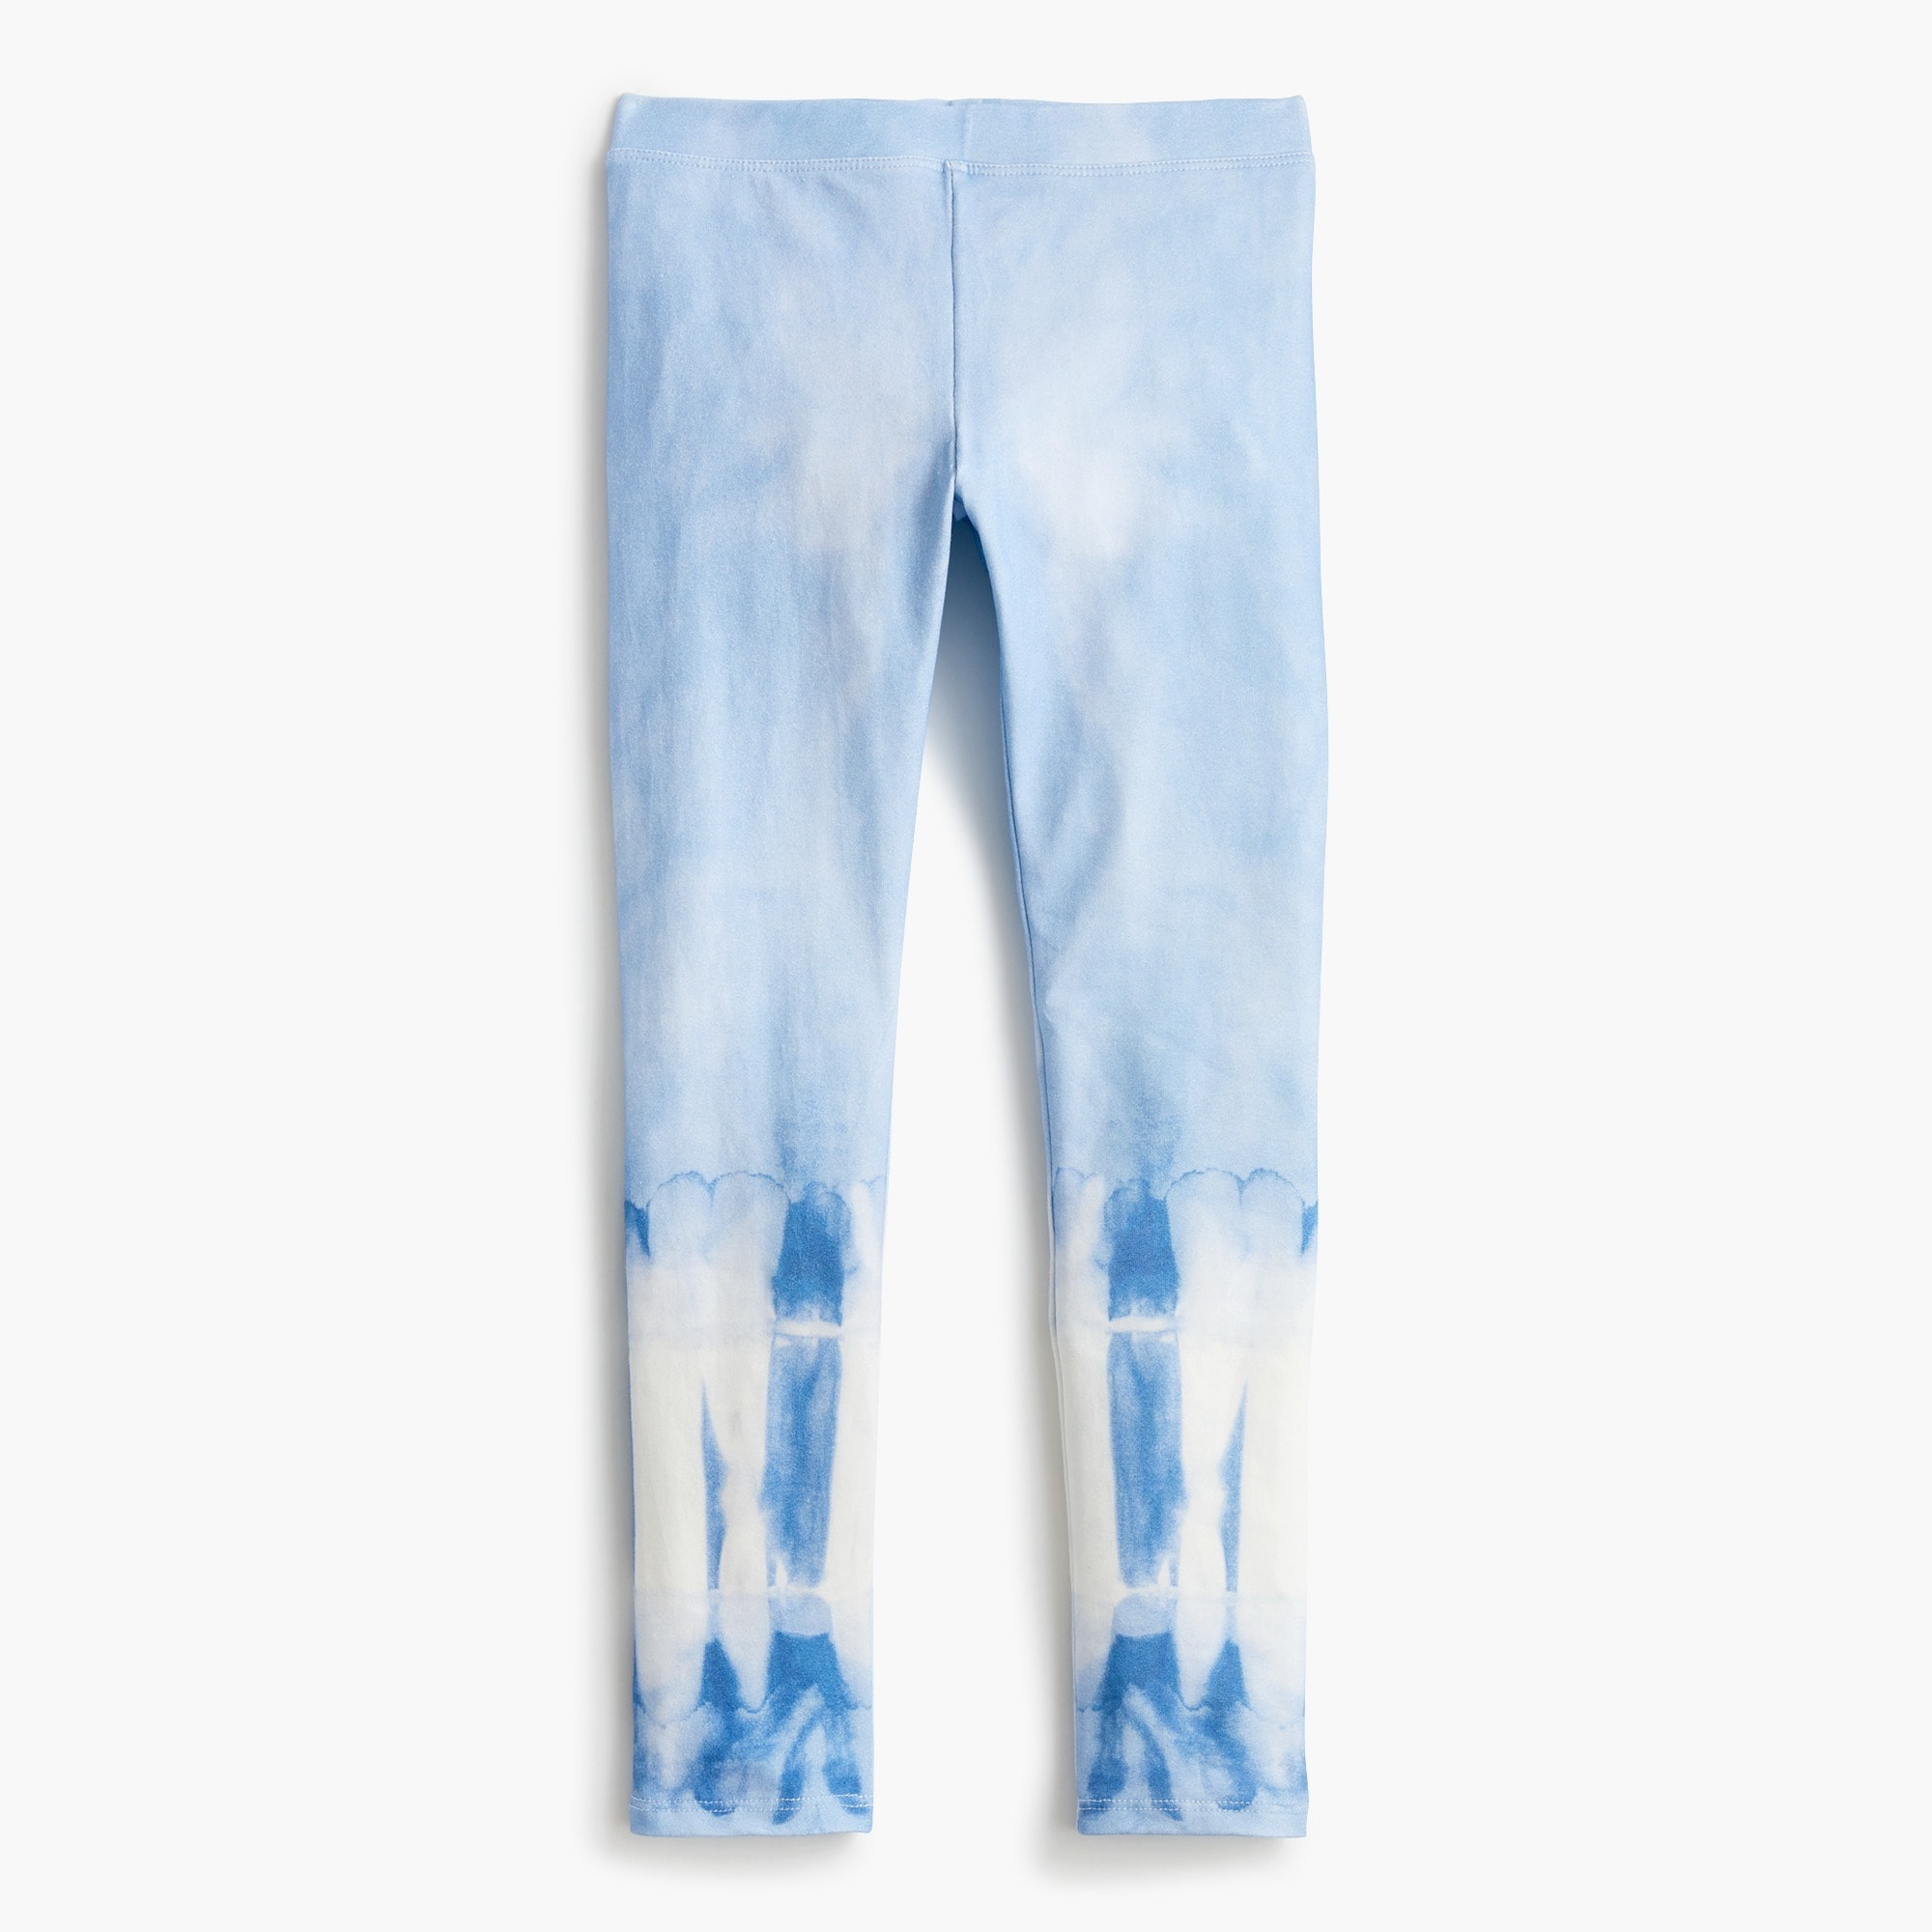 Girls' everyday leggings in tie-dye girl pants c